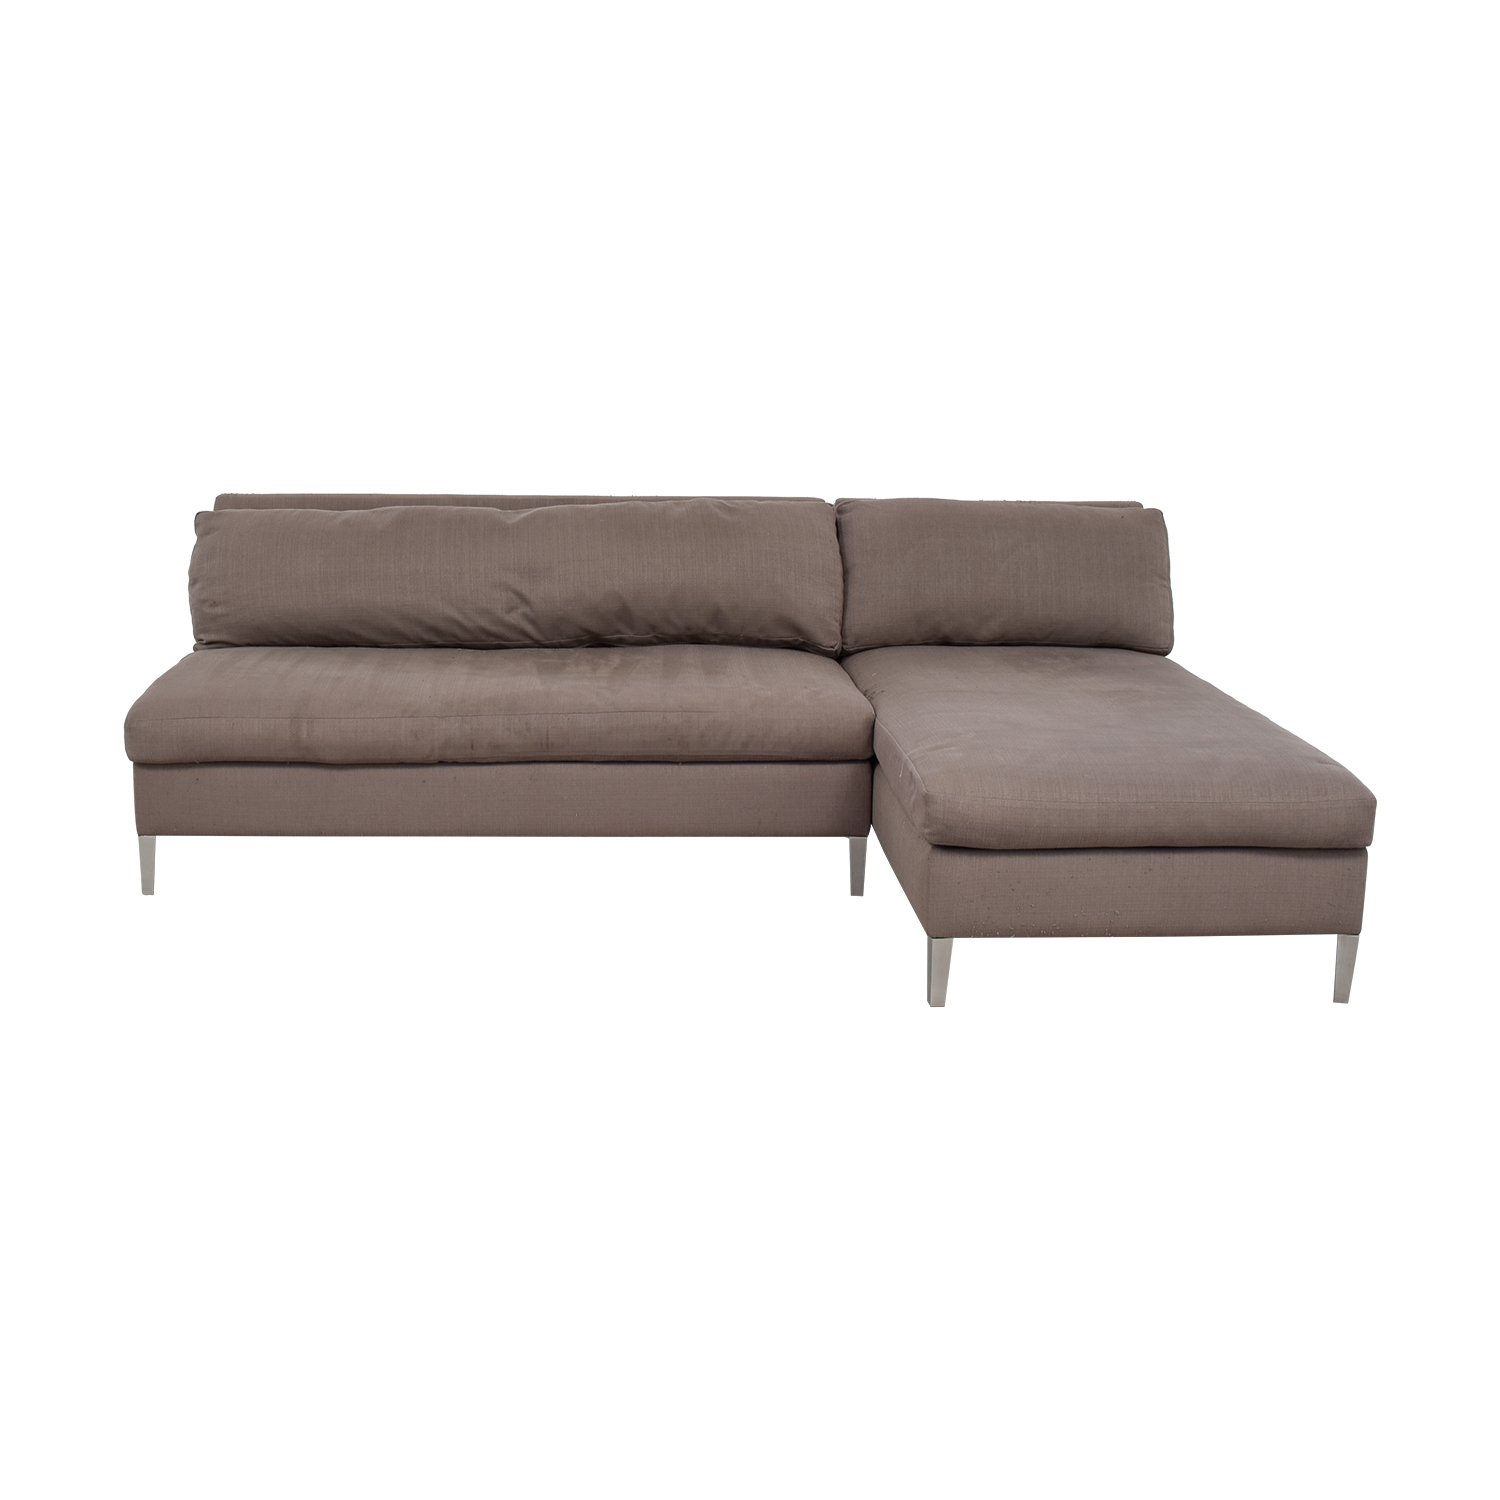 CB2 CB2 Ciello II Grey Chaise Sectional nyc